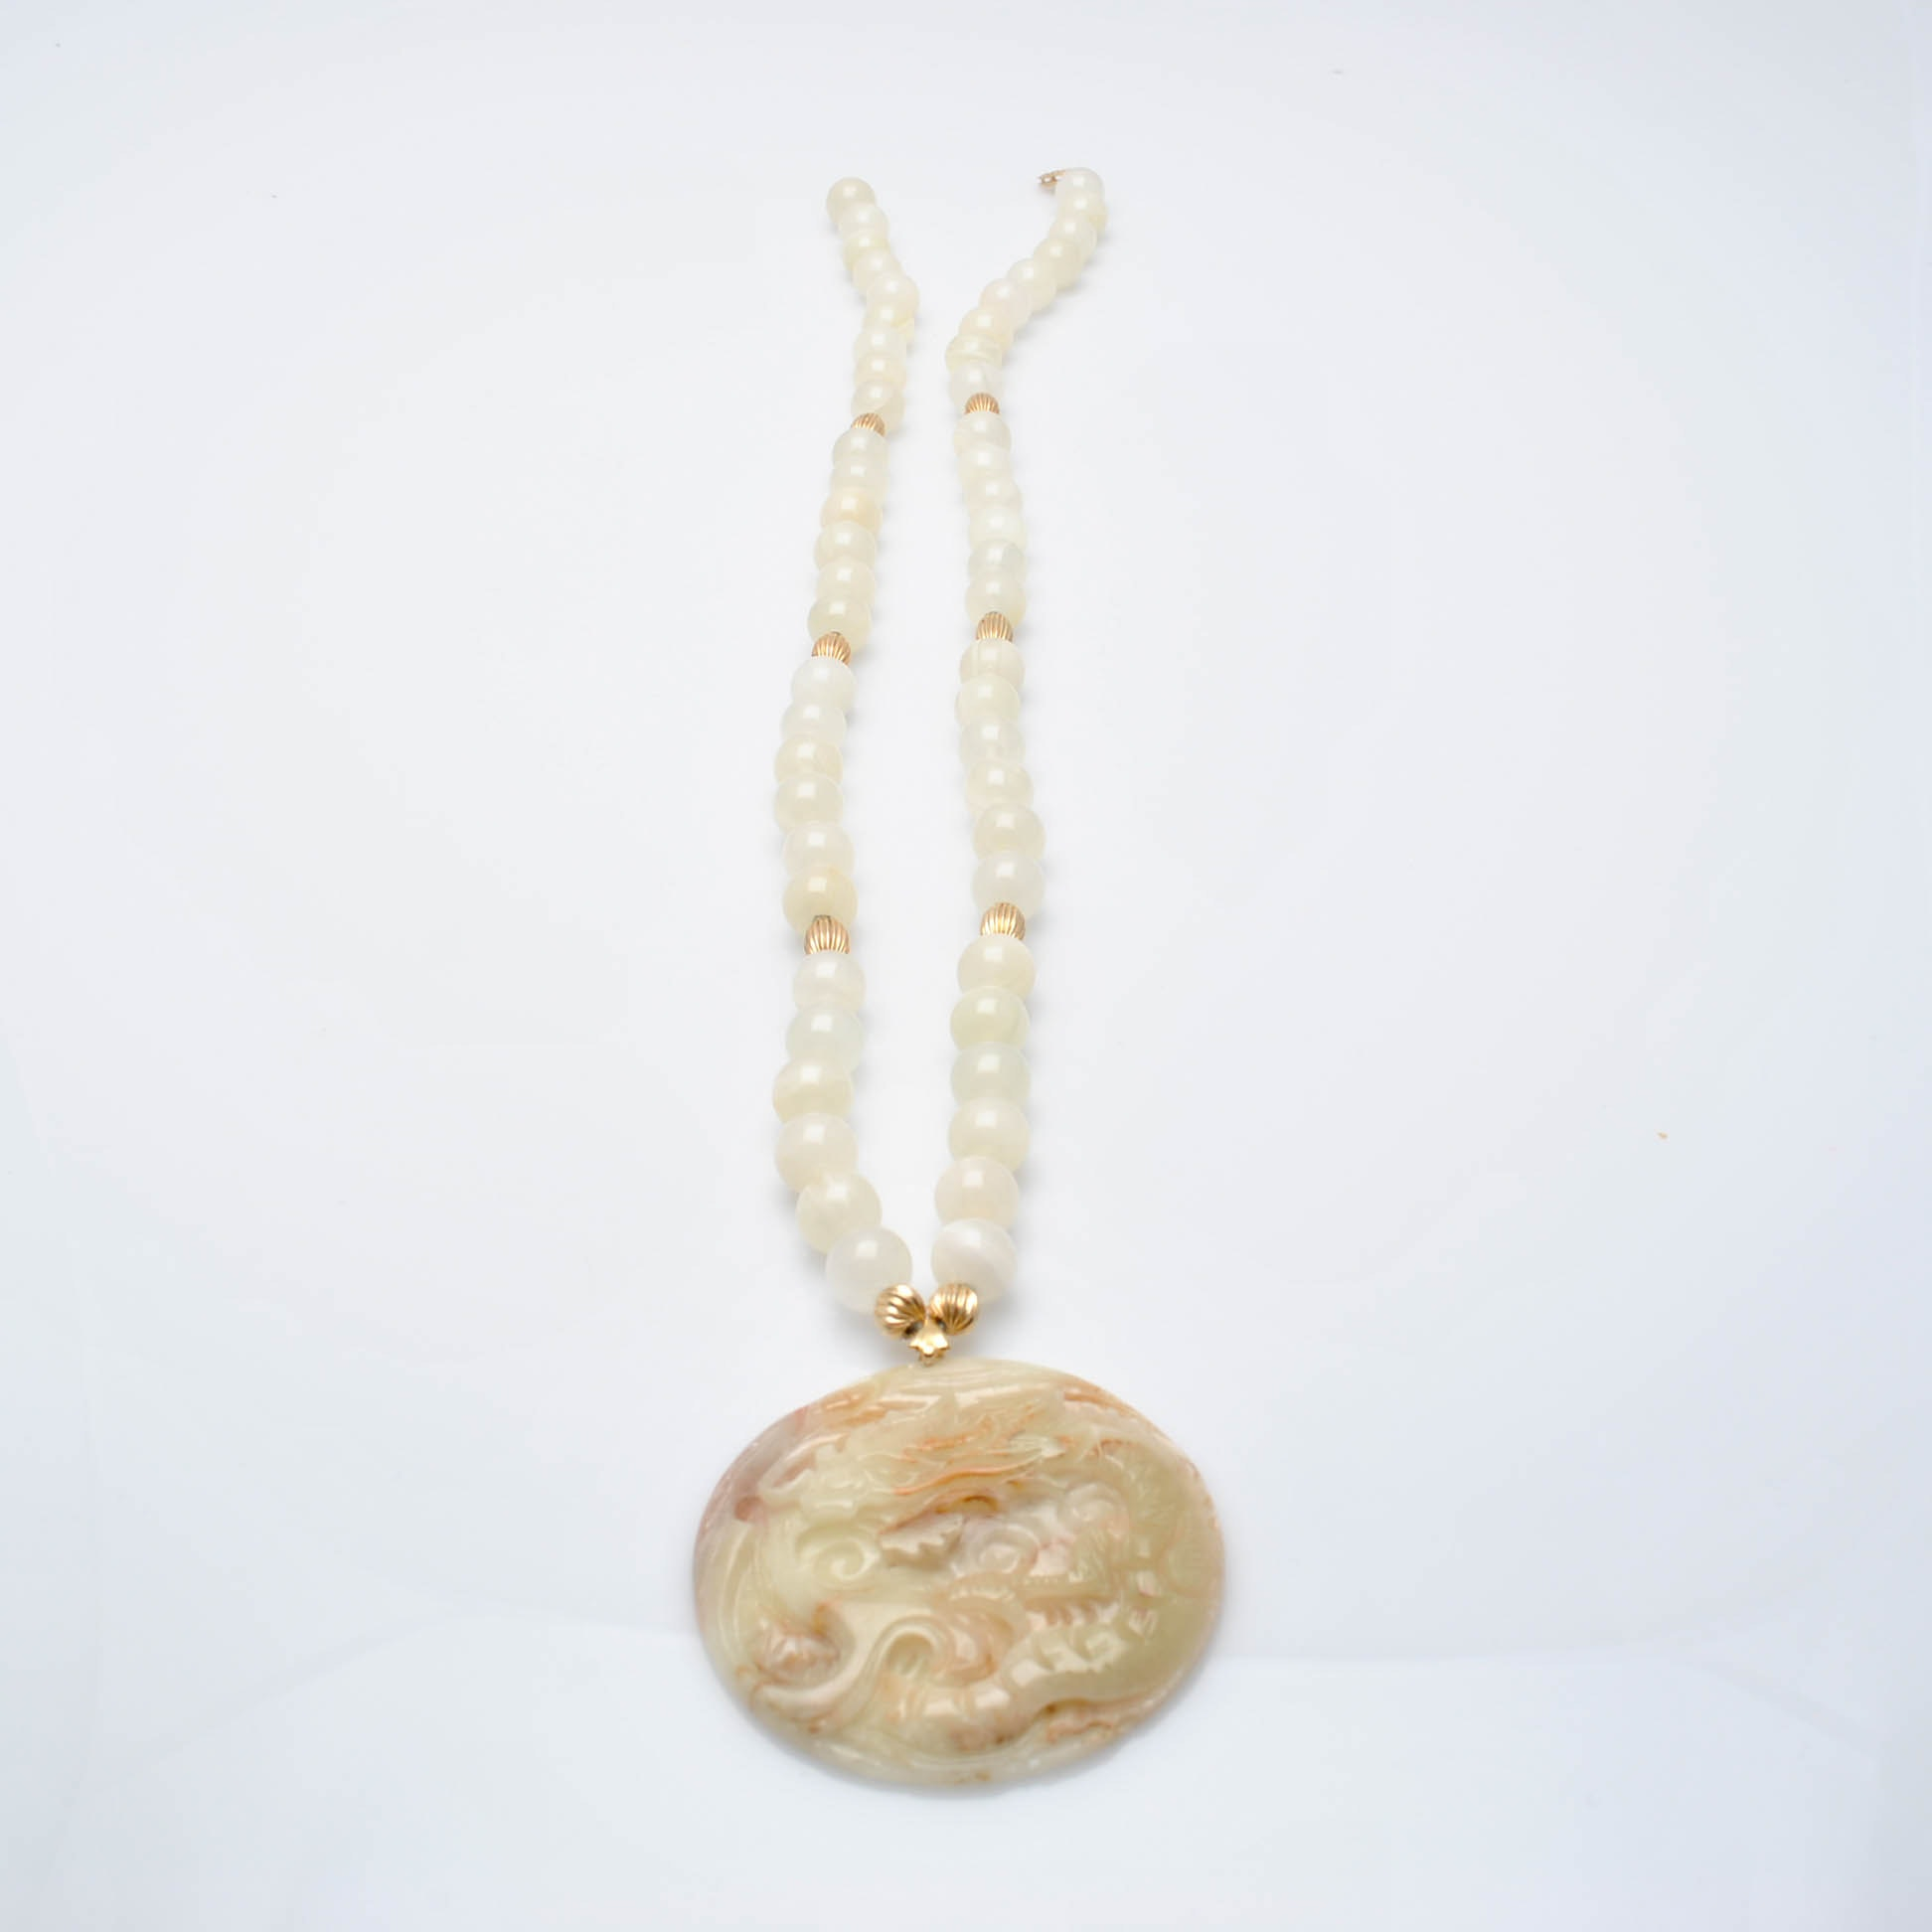 14K Yellow Gold Carved Nephrite Jade Pendant and Agate Bead Necklace